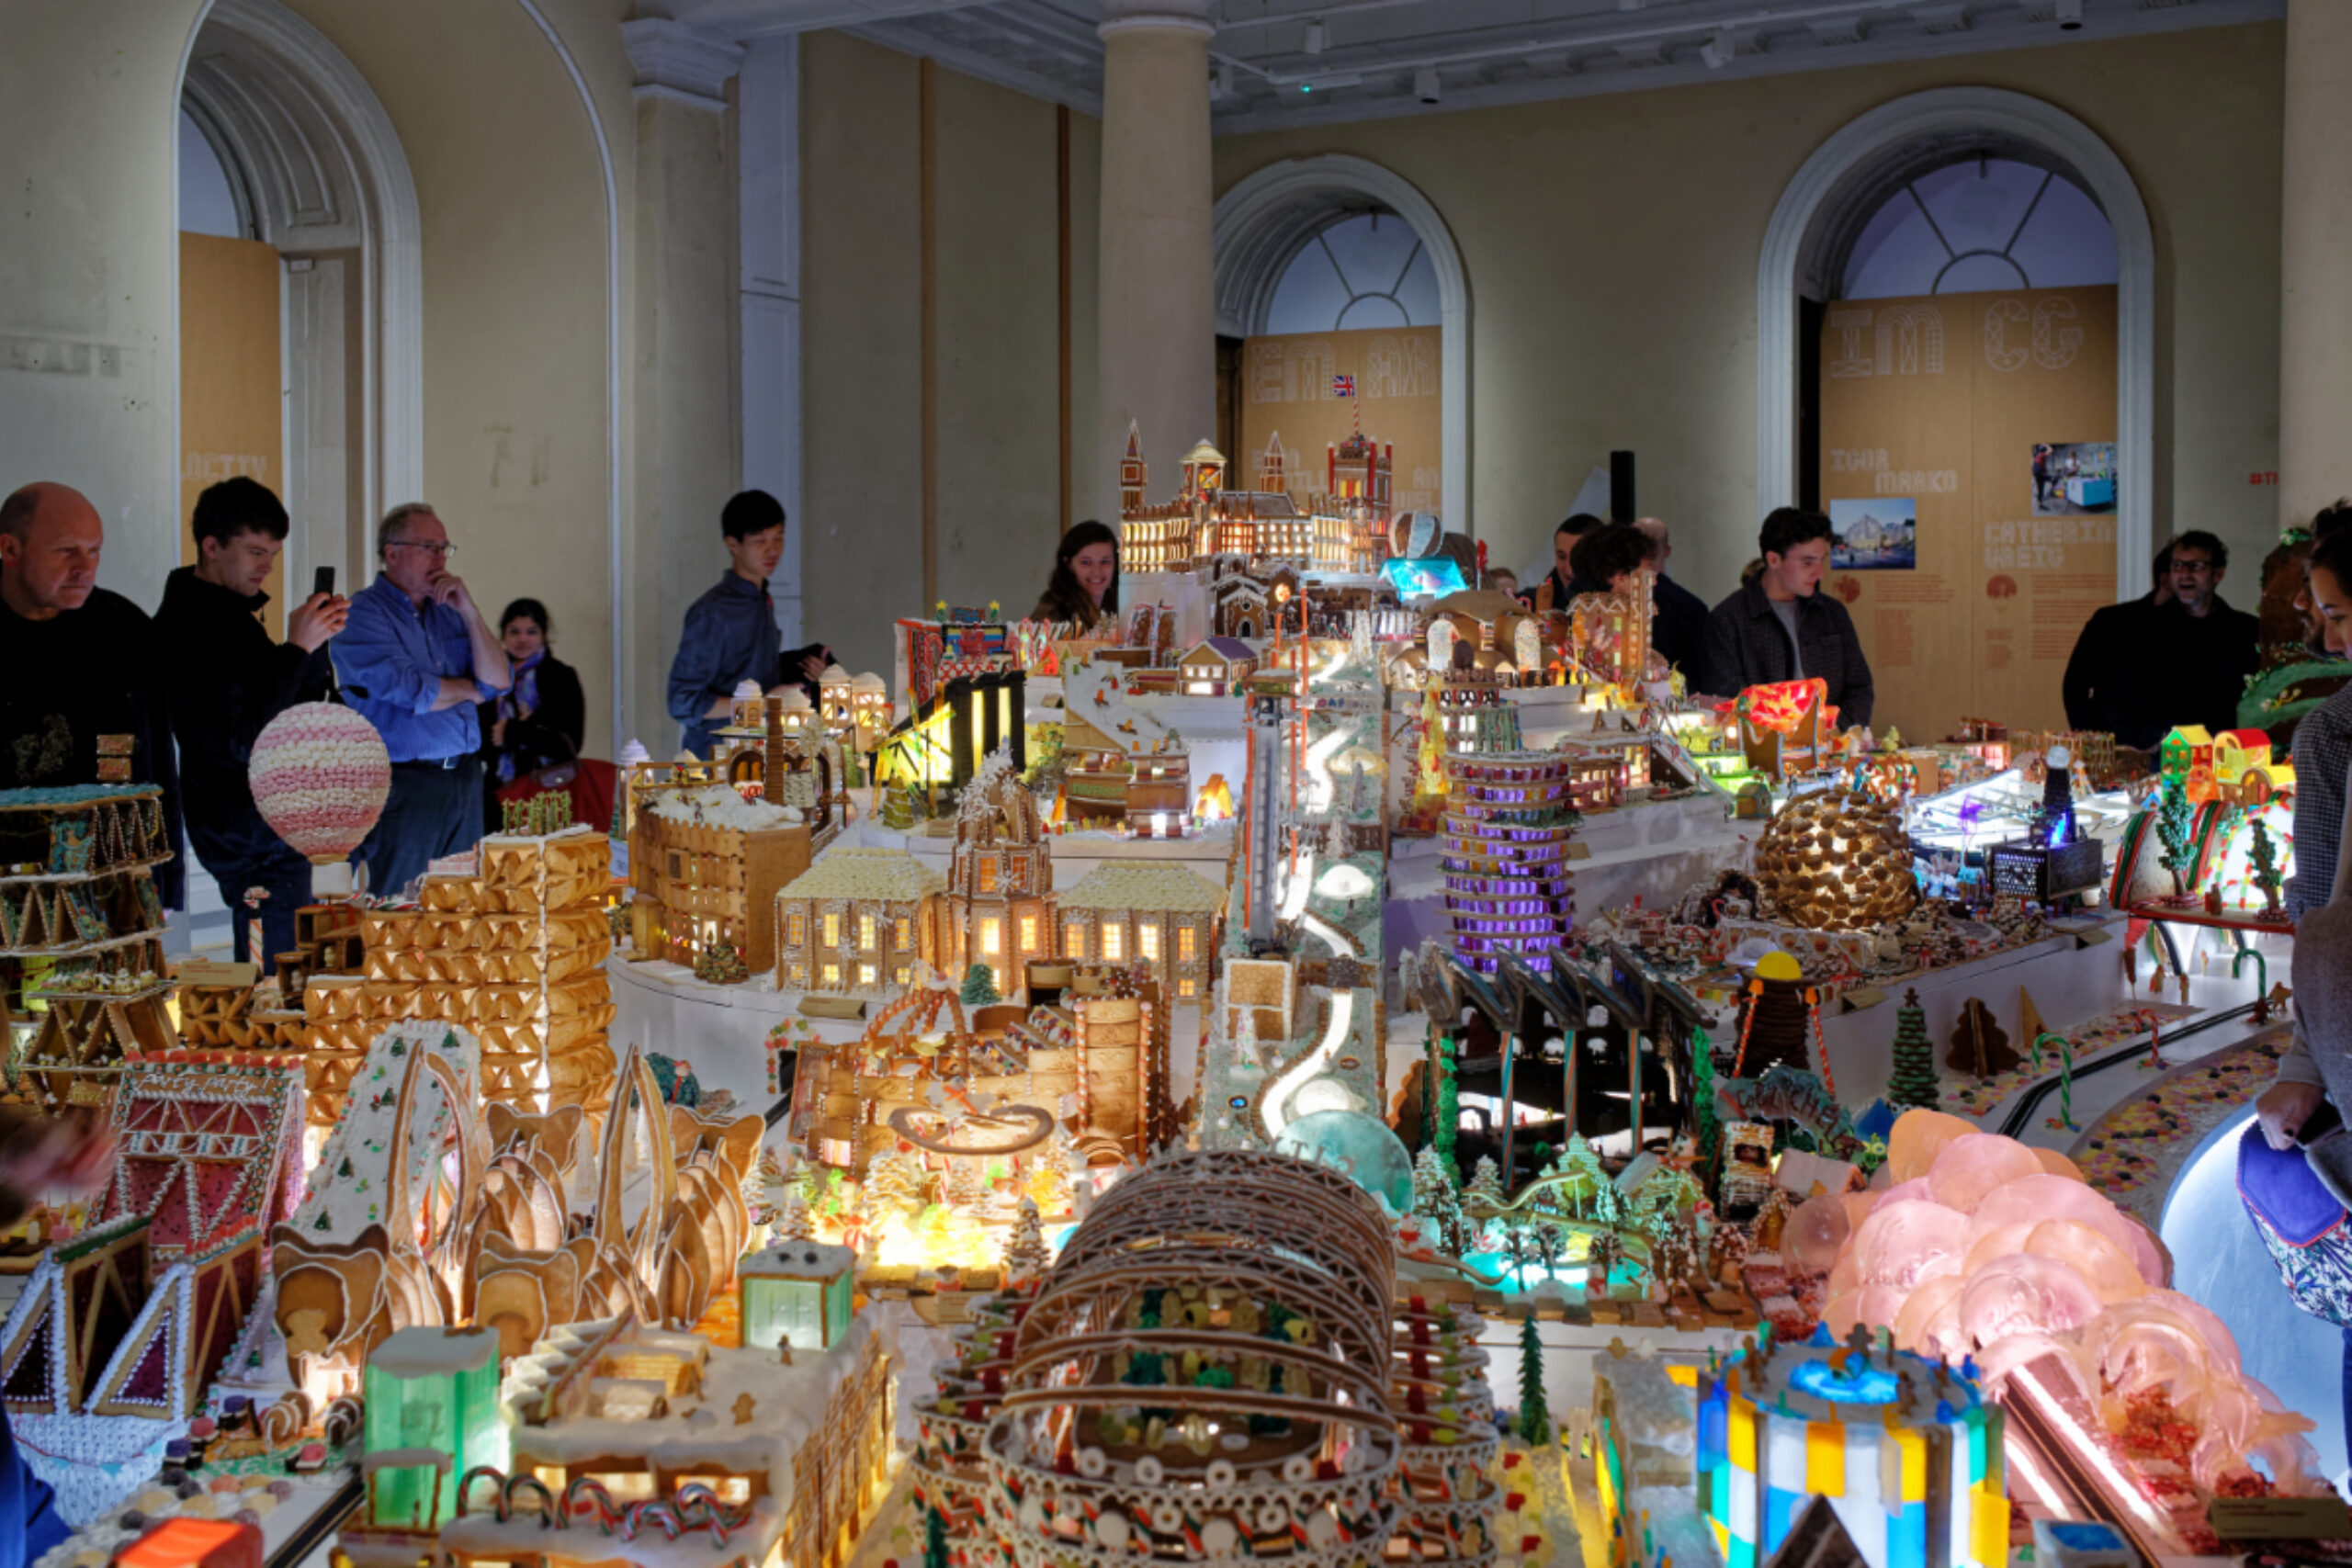 Gingerbread city exhibit room with all entries arranged